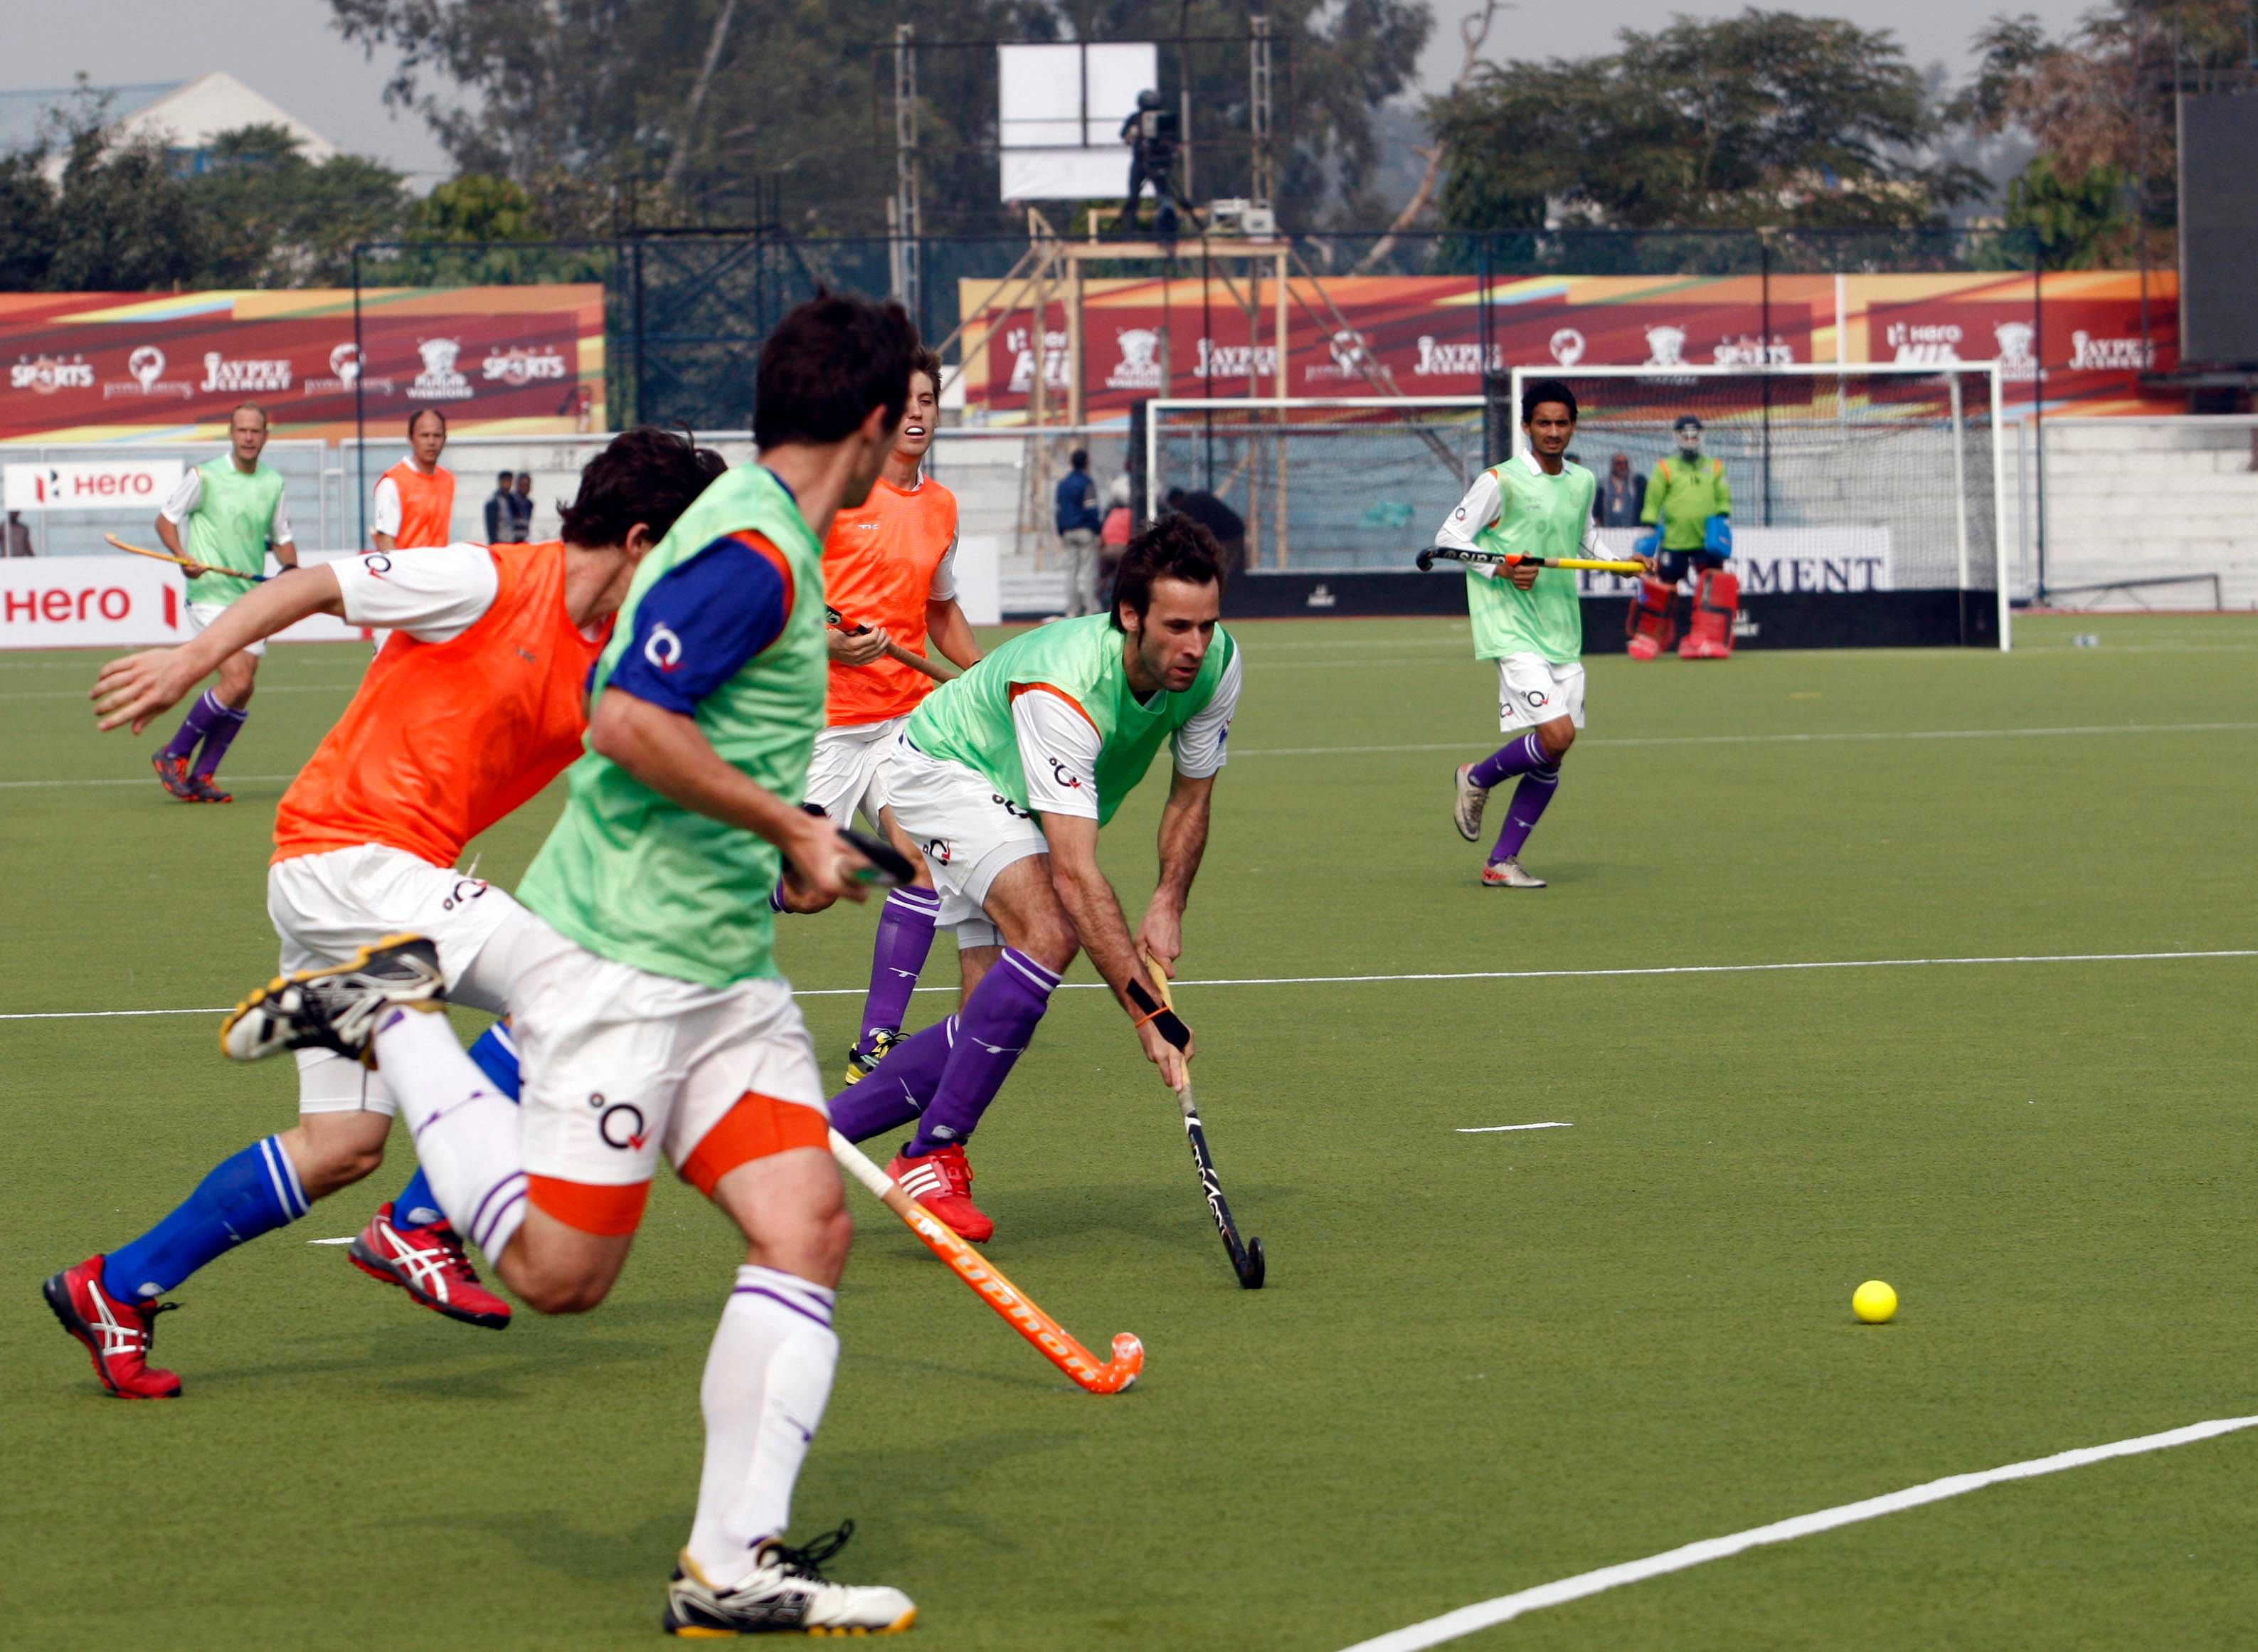 David Alegre dribbles at the Up Wizards team practice session at Jalandhar on 16th Jan 2013